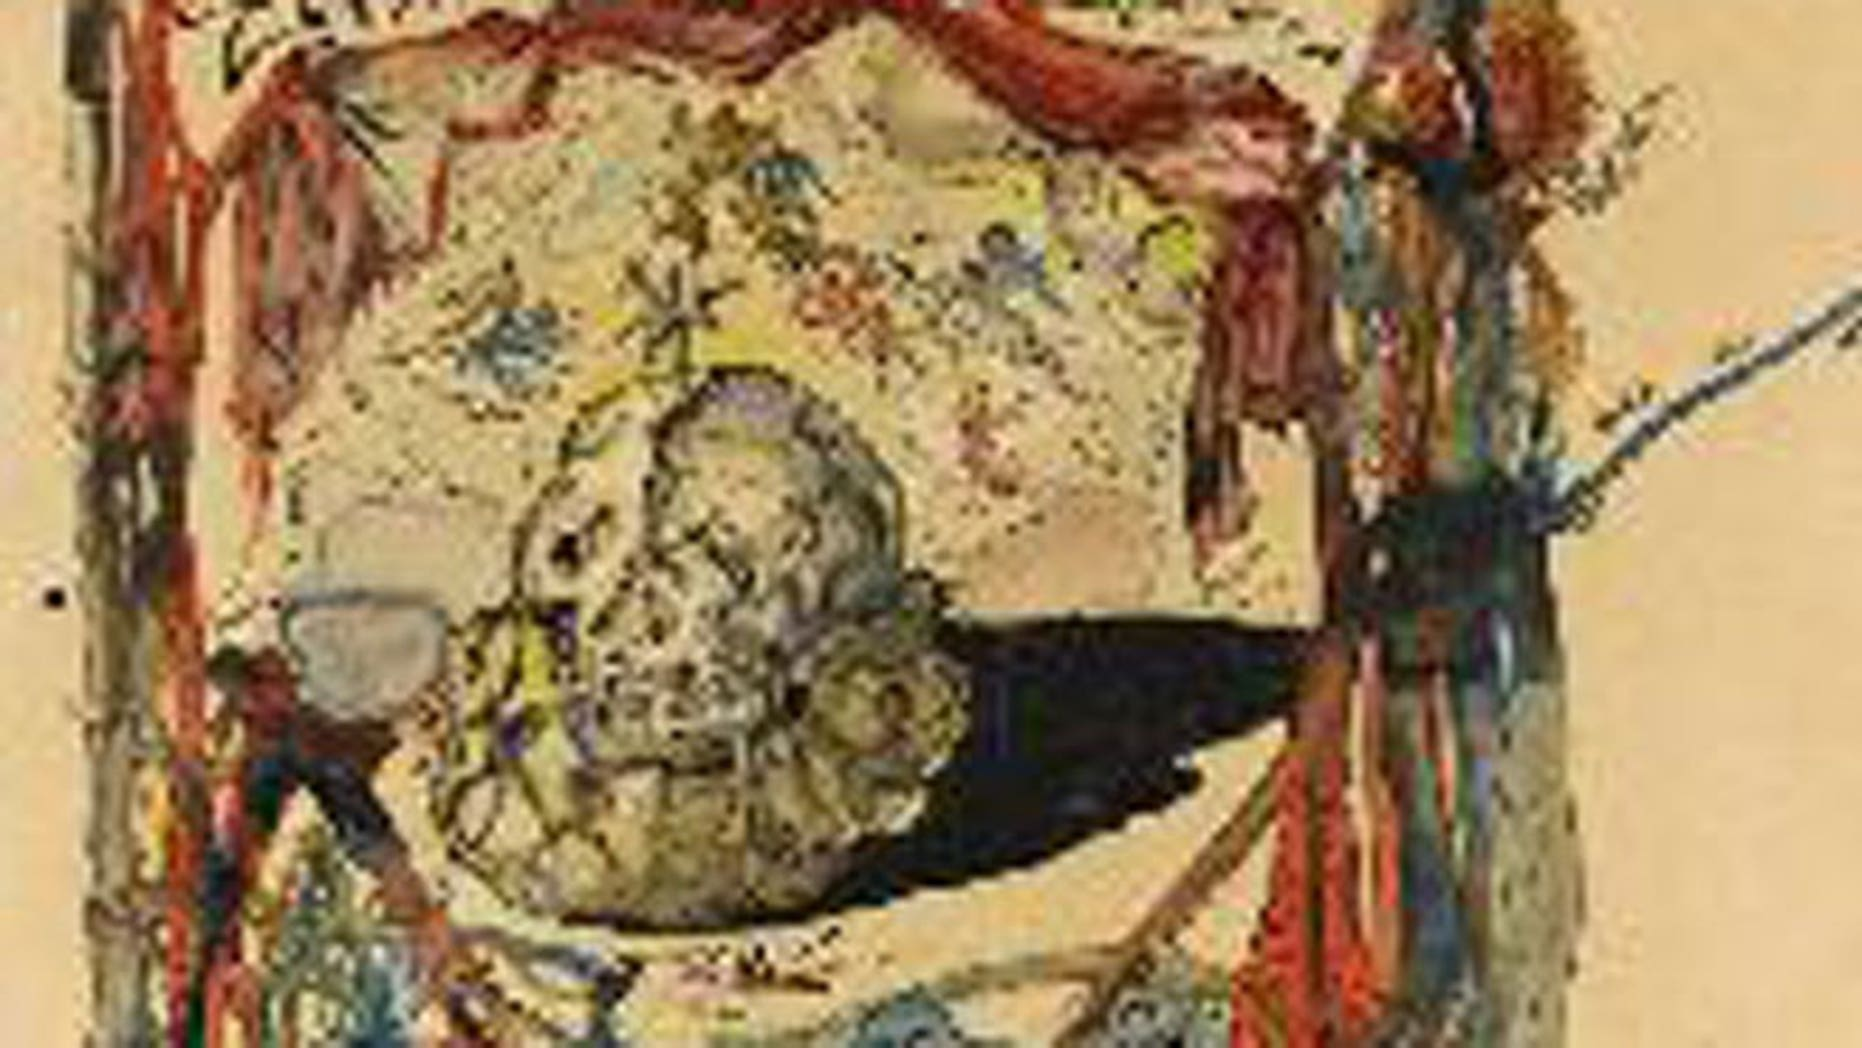 This image provided by the new york police department shows a 1949 salvador dali painting